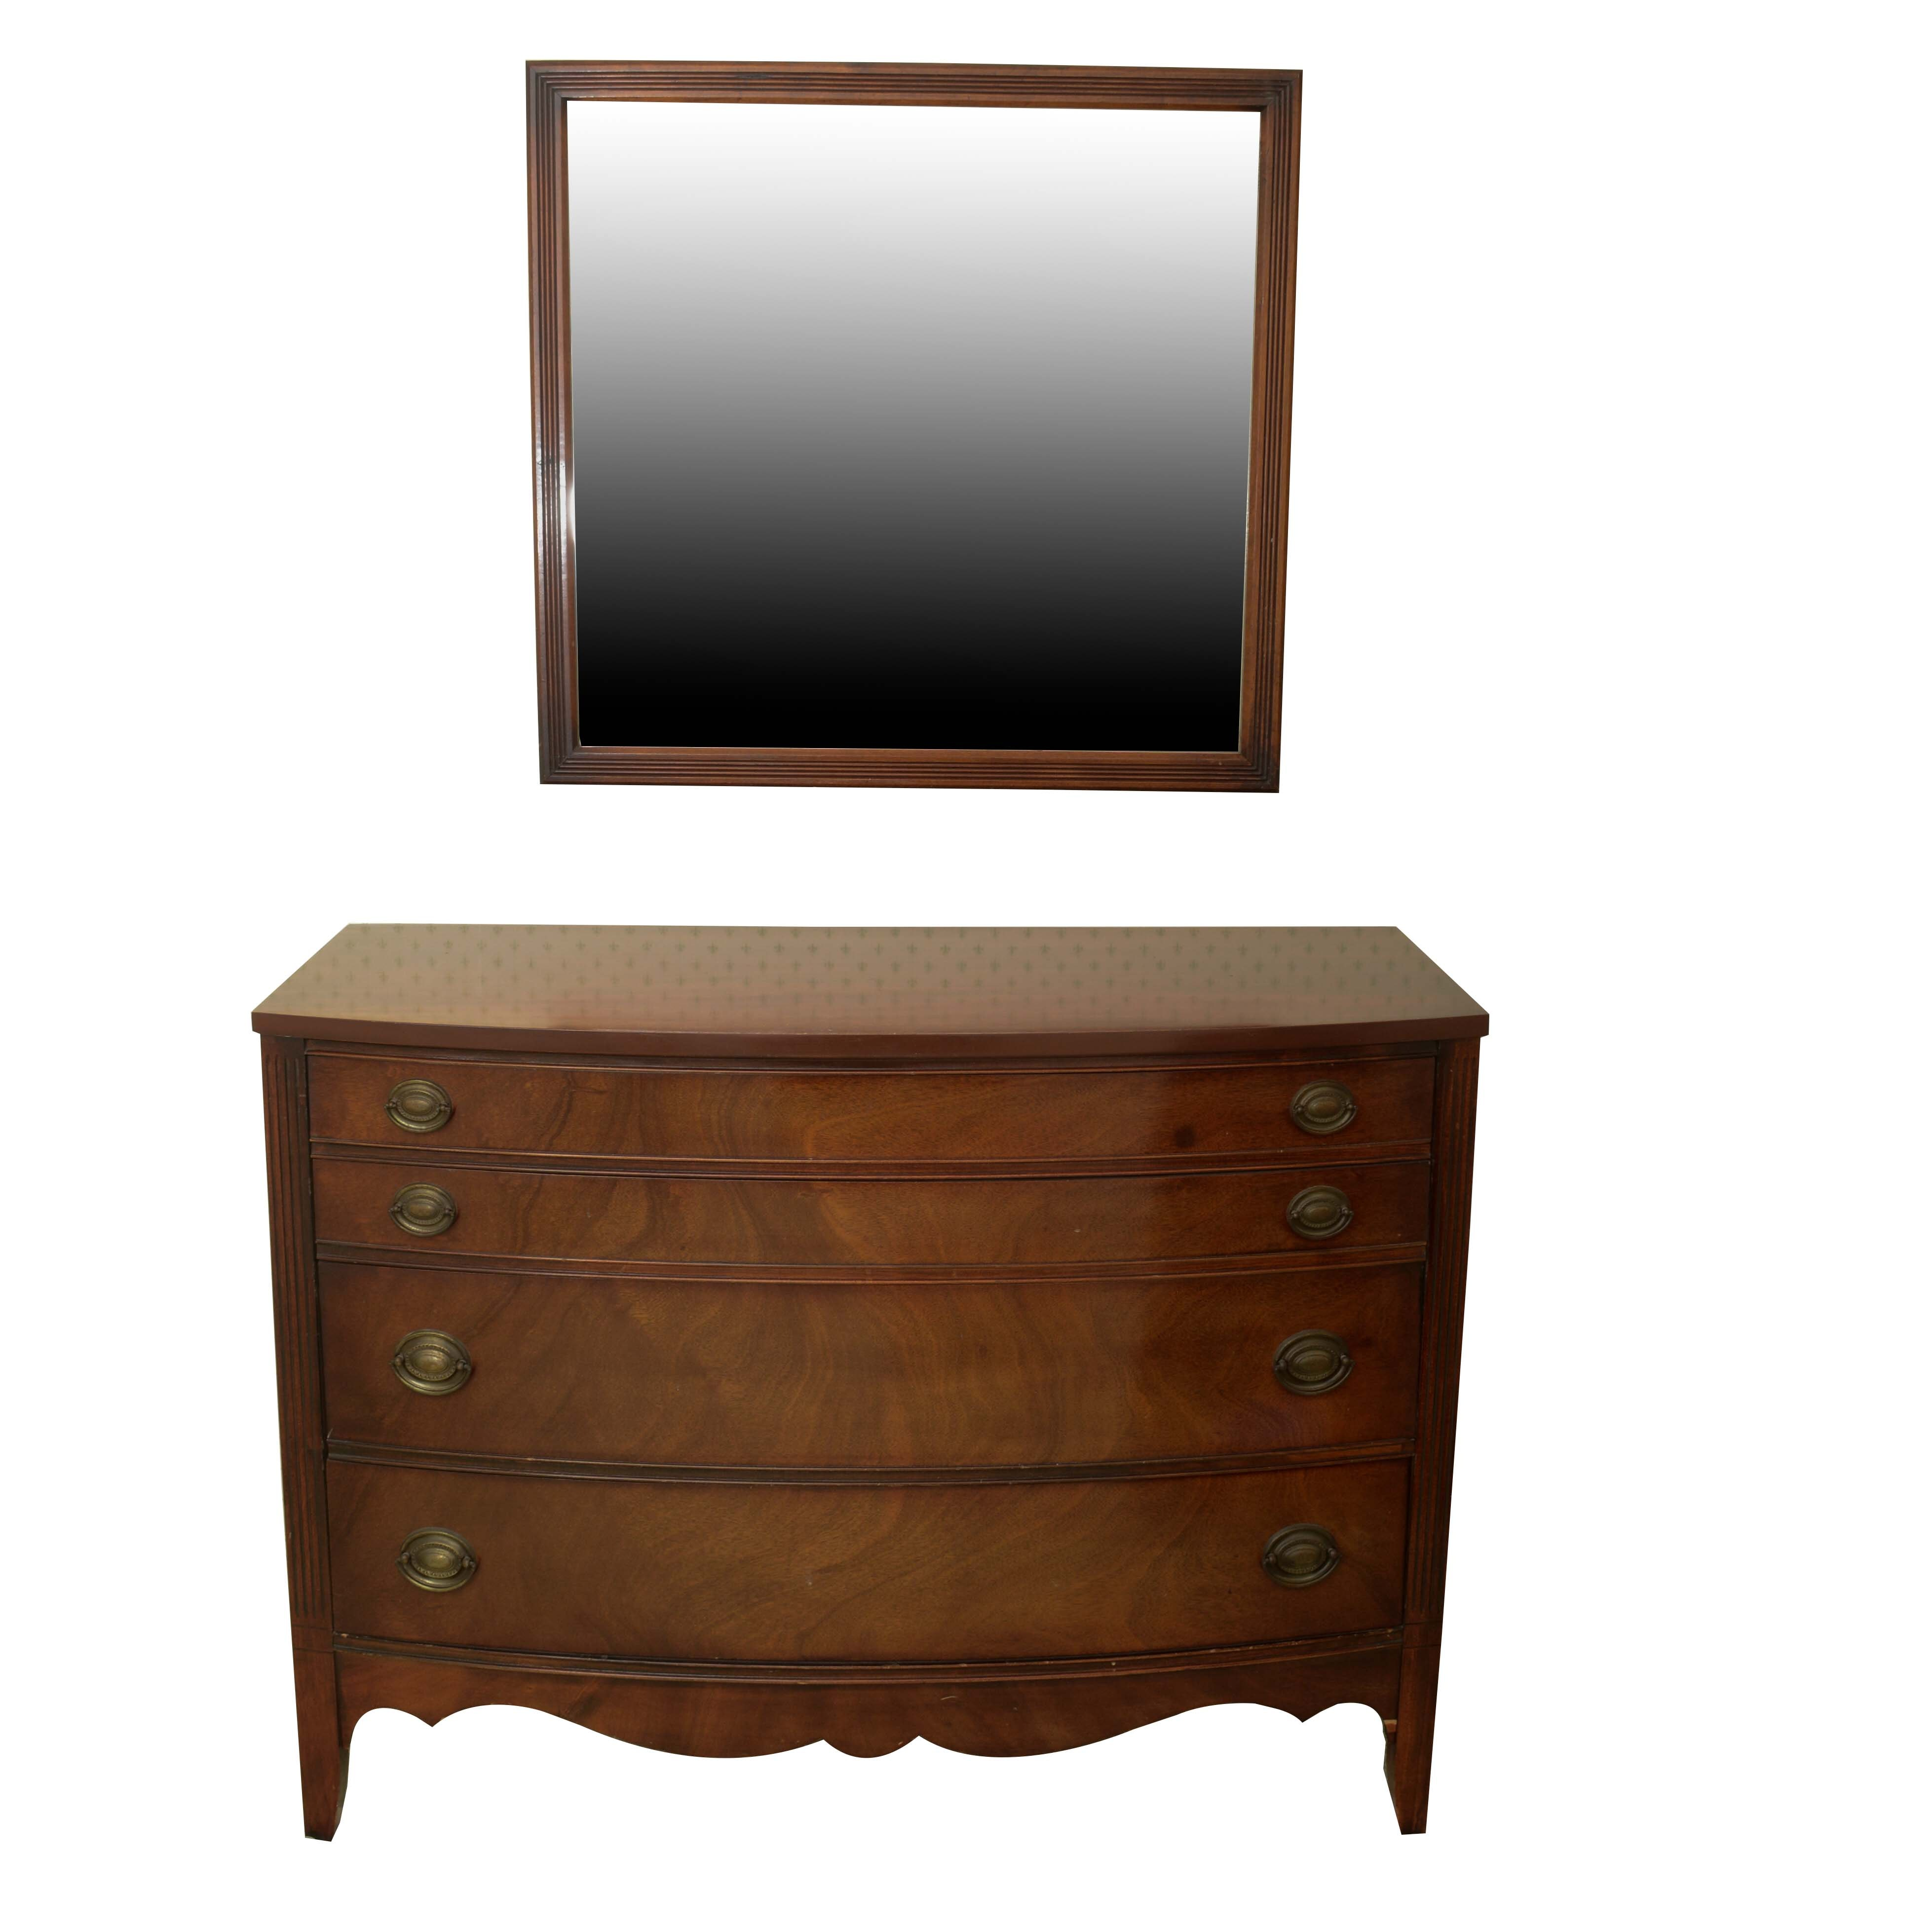 Vintage Hepplewhite Style Chest of Drawers with Mirror by Dixie